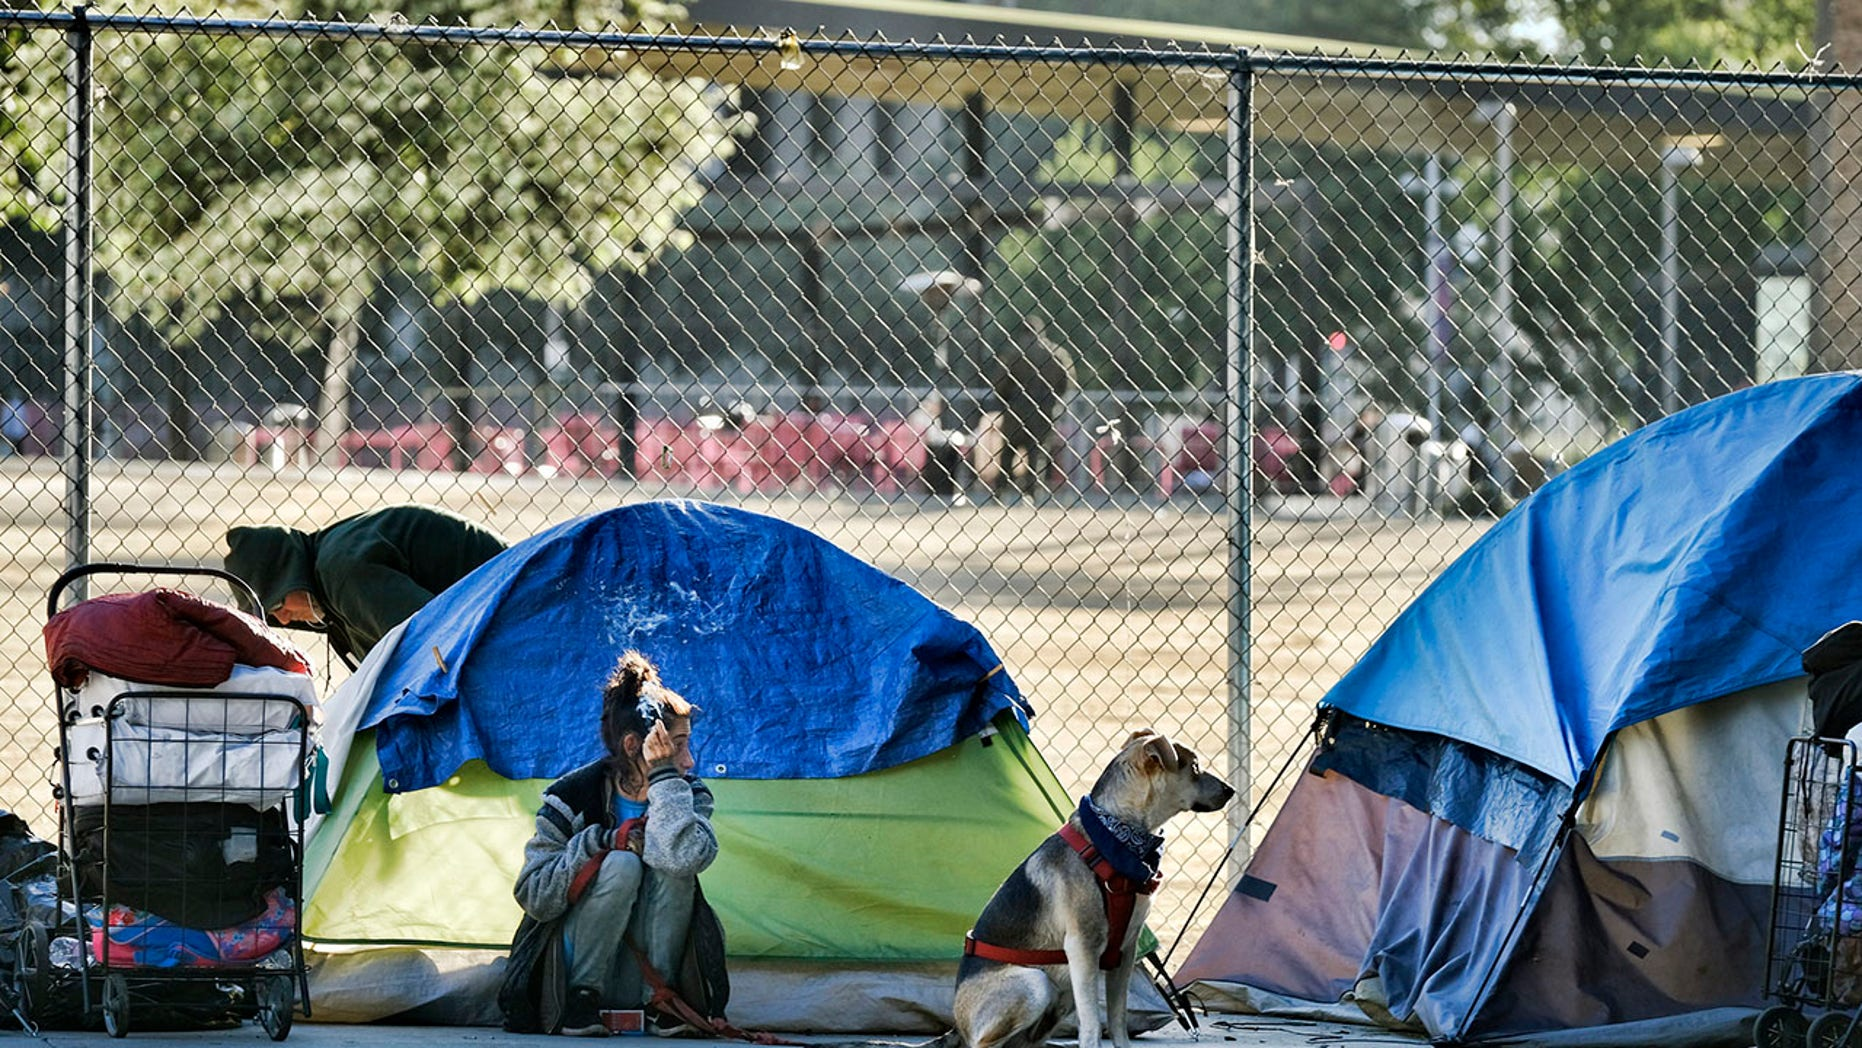 Westlake Legal Group AP19182802805941 Los Angeles business owners put up fences, thorny plants to deter homeless: report fox-news/us/us-regions/west/california fox news fnc/us fnc Brie Stimson article 7241b41f-a4b6-54f8-8c63-ff4f1b1d3155